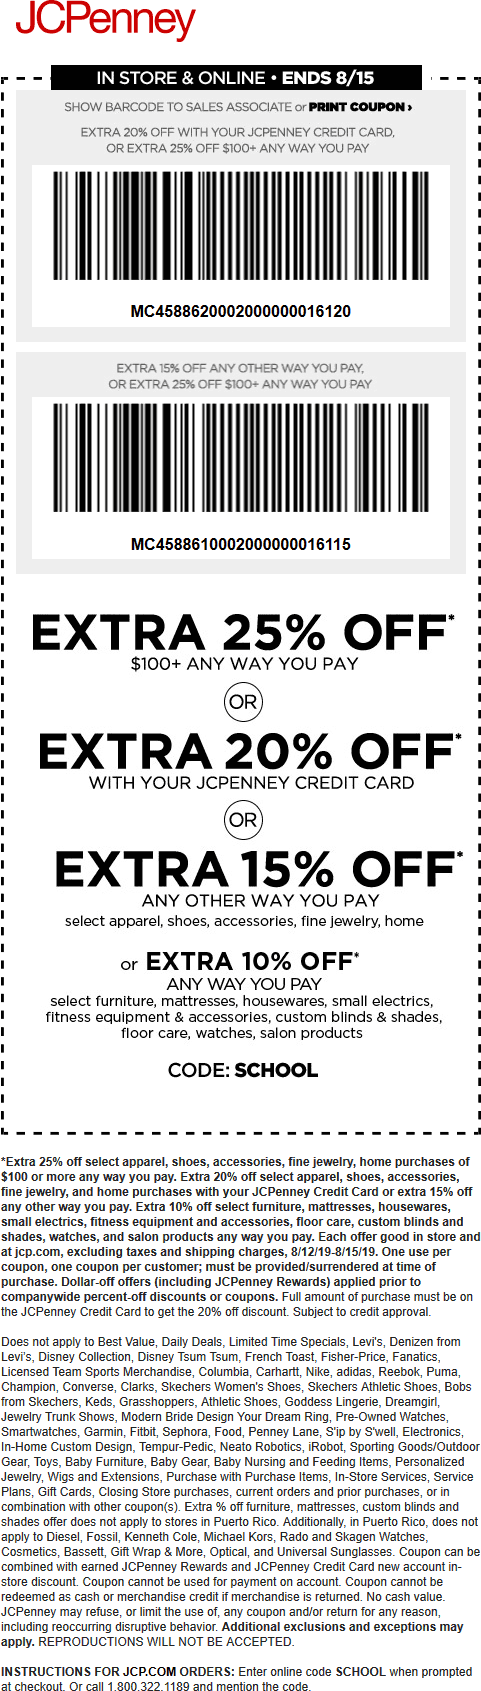 JCPenney.com Promo Coupon 15-25% off at JCPenney, or online via promo code SCHOOL